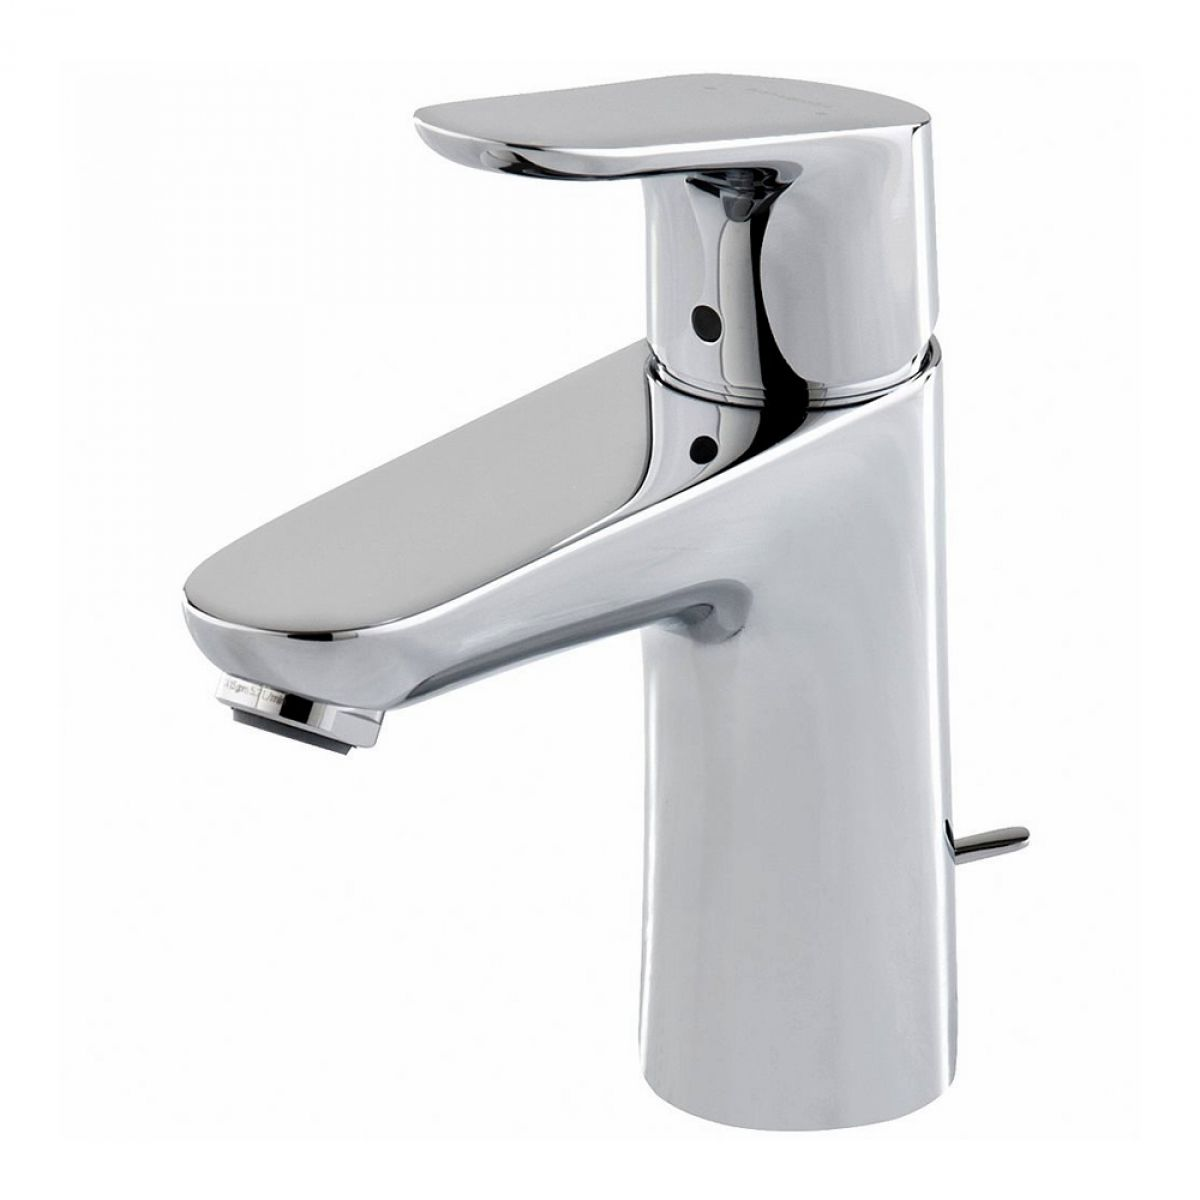 Hans Grohe Hansgrohe Focus 100 Basin Mixer Tap Uk Bathrooms